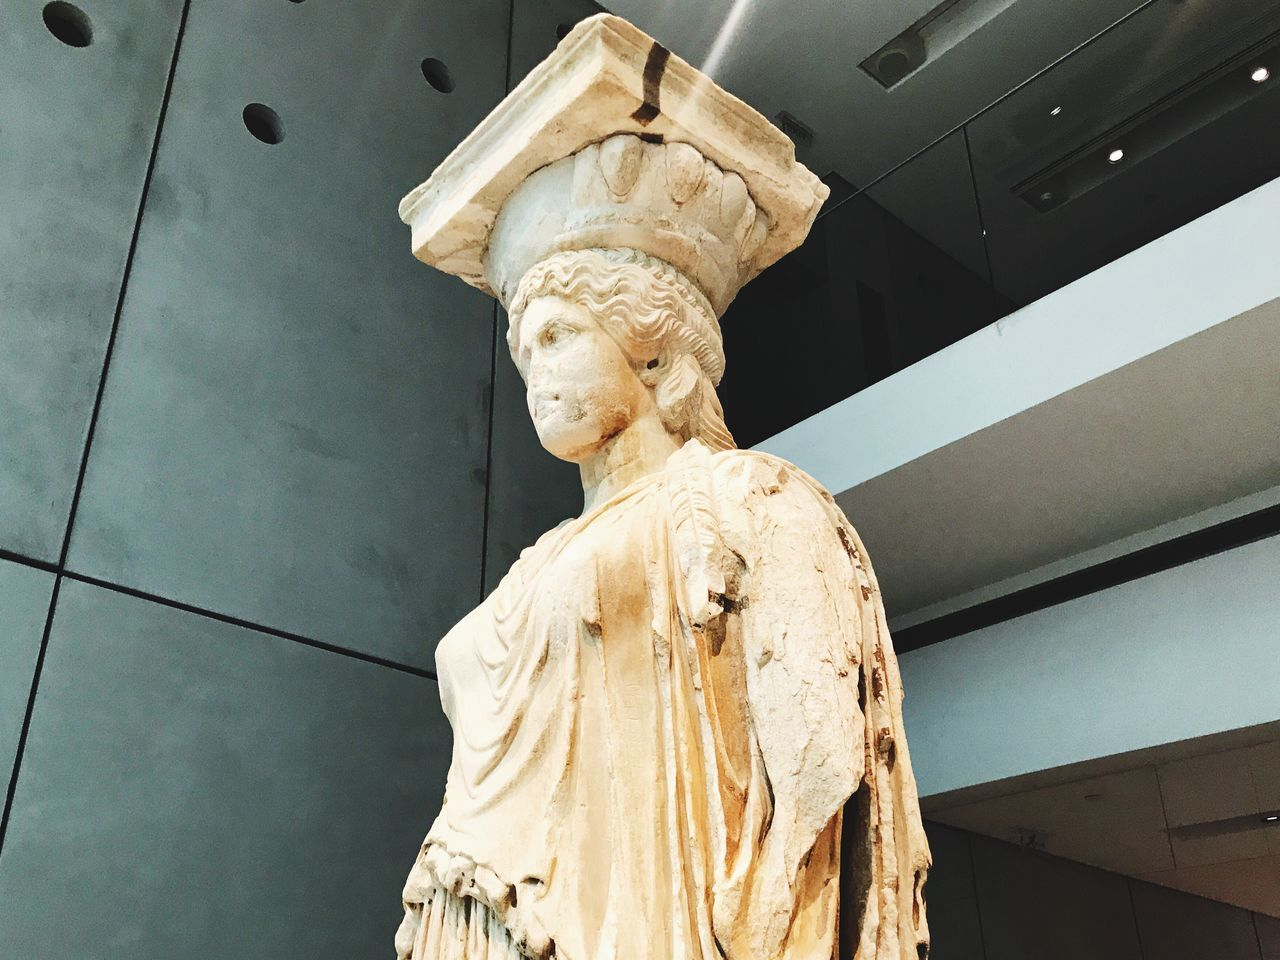 Caryatid Column, Acropolis Museum Caryatid Column Acropolis Architecture Sculpted Female Architectural Sopport Pillar Athens Greece Statue